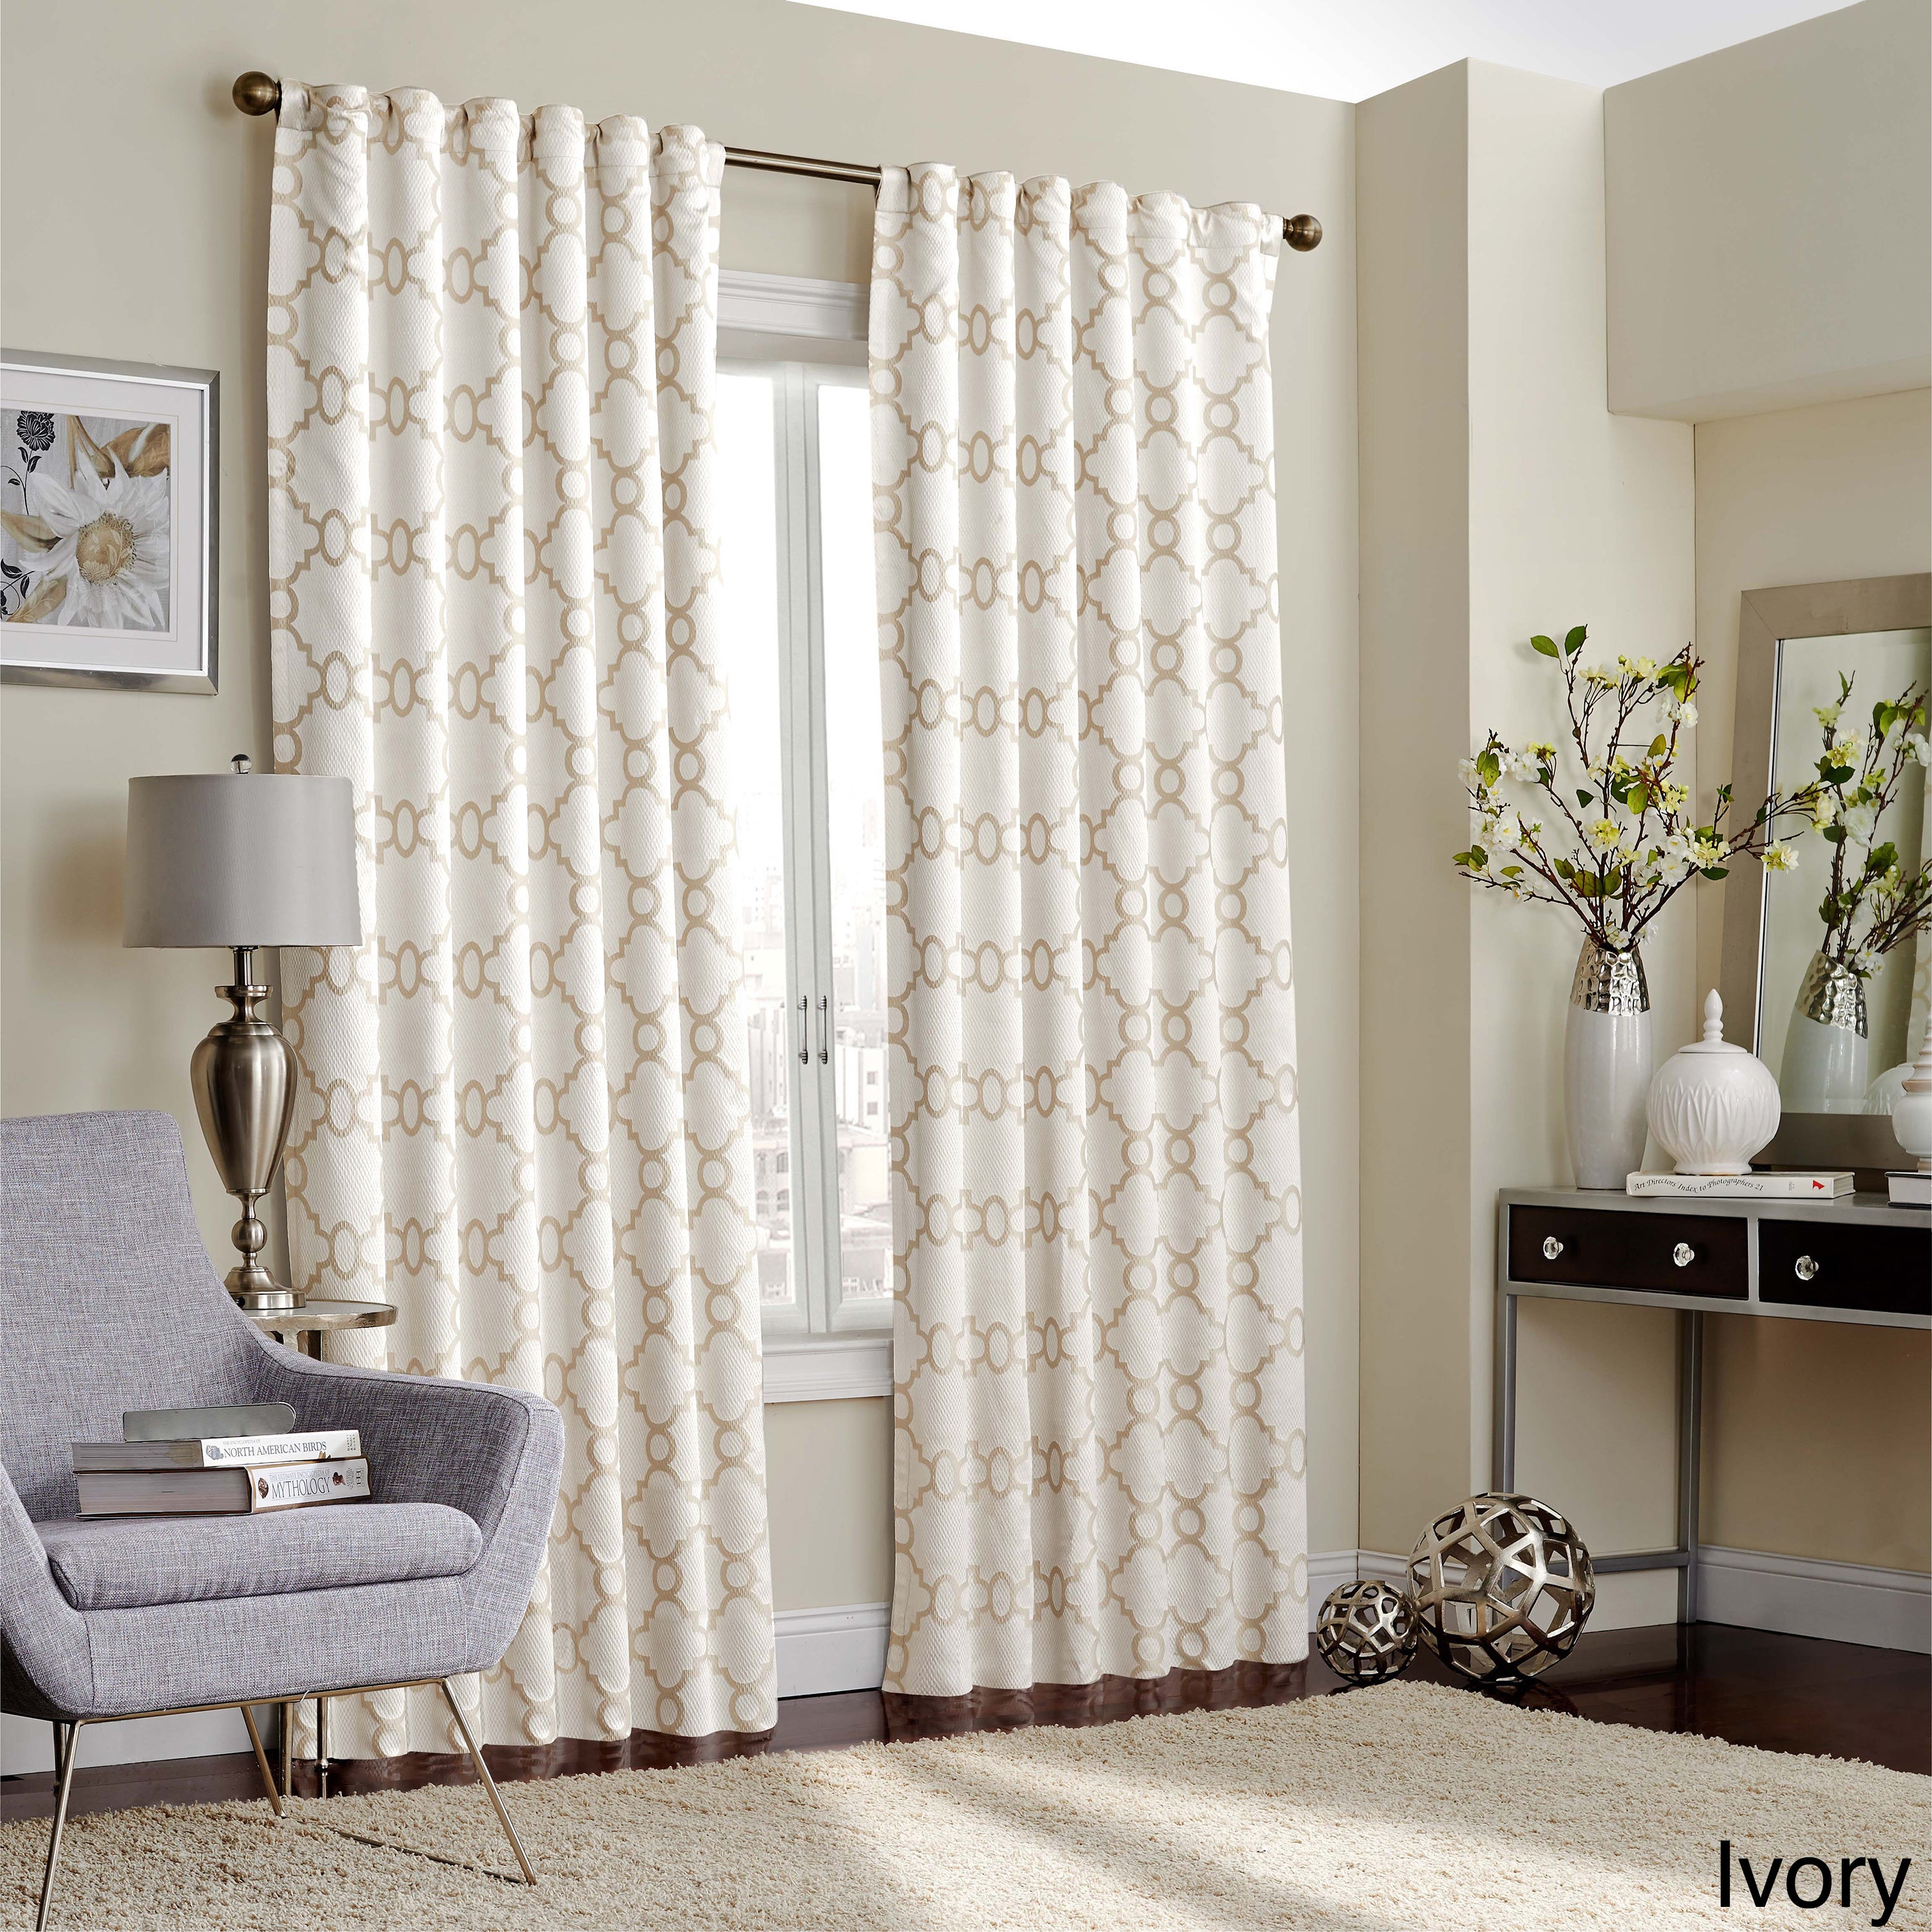 Eclipse Correll Thermalayer Blackout Window Curtain Panel Regarding Gracewood Hollow Tucakovic Energy Efficient Fabric Blackout Curtains (View 4 of 20)